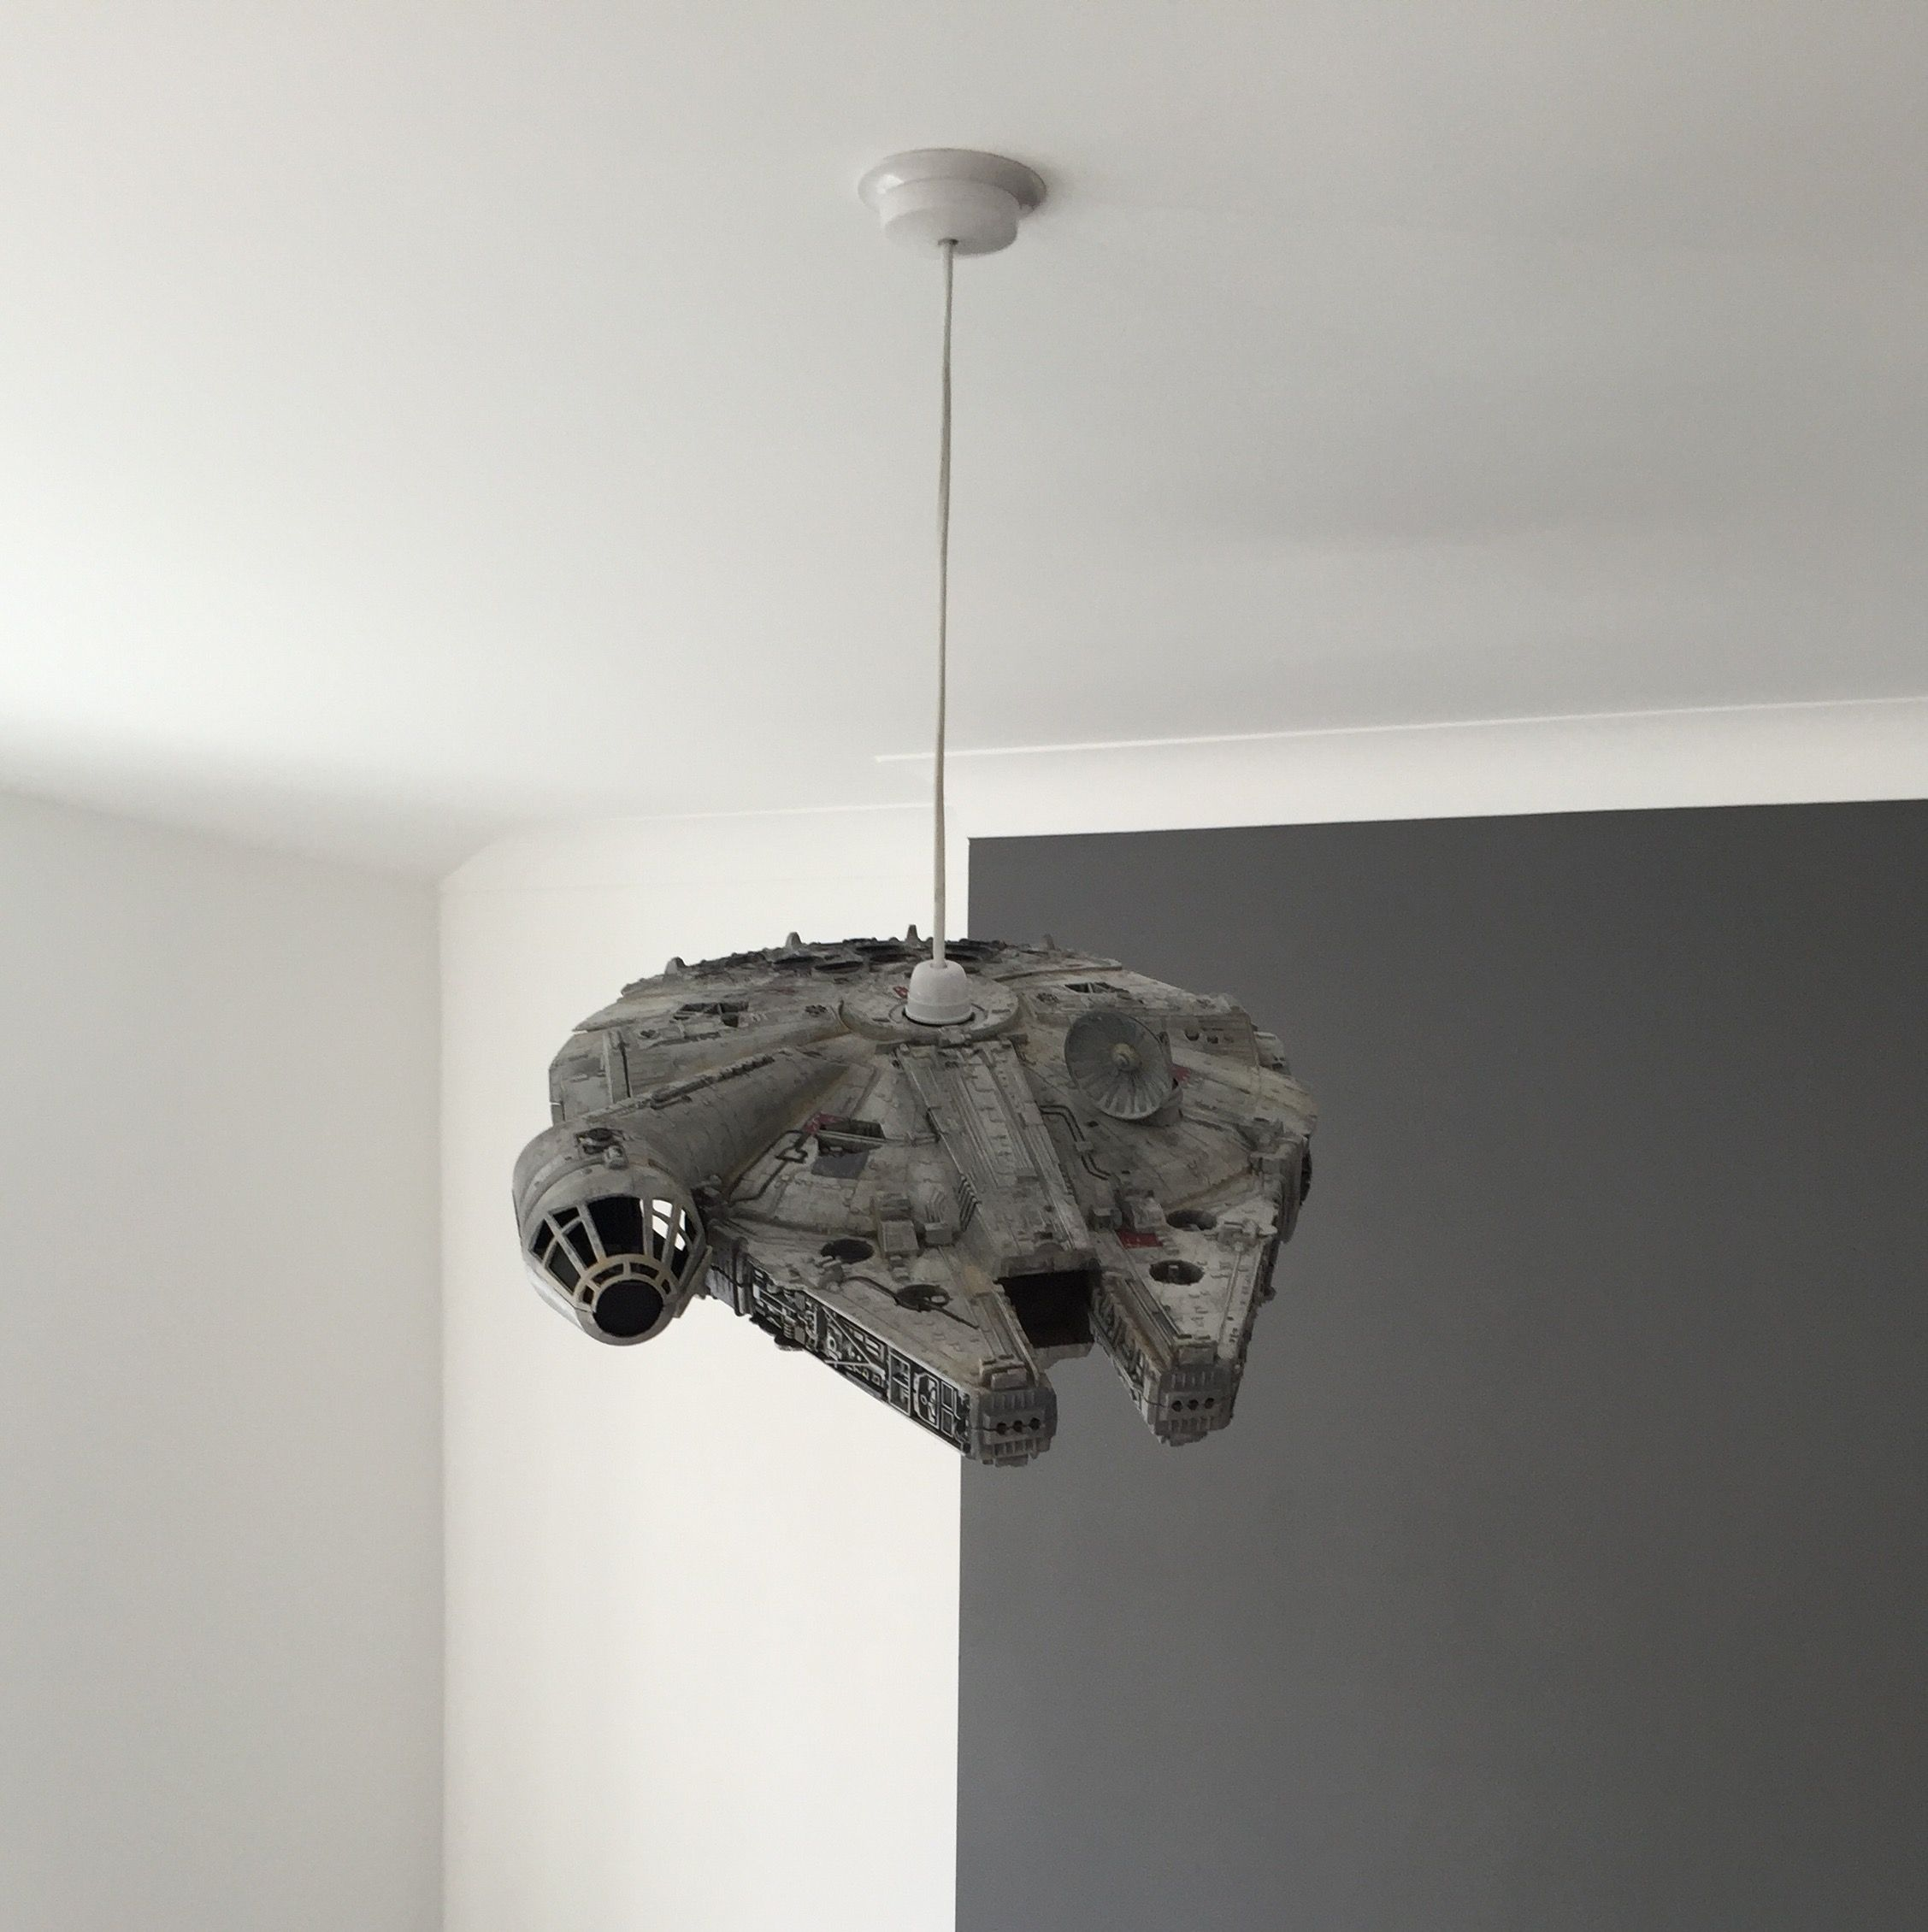 Star Wars Millennium Falcon Toy Turned In To Lampshade Millennium Falcon Toy Star Wars Lamp Millennium Falcon